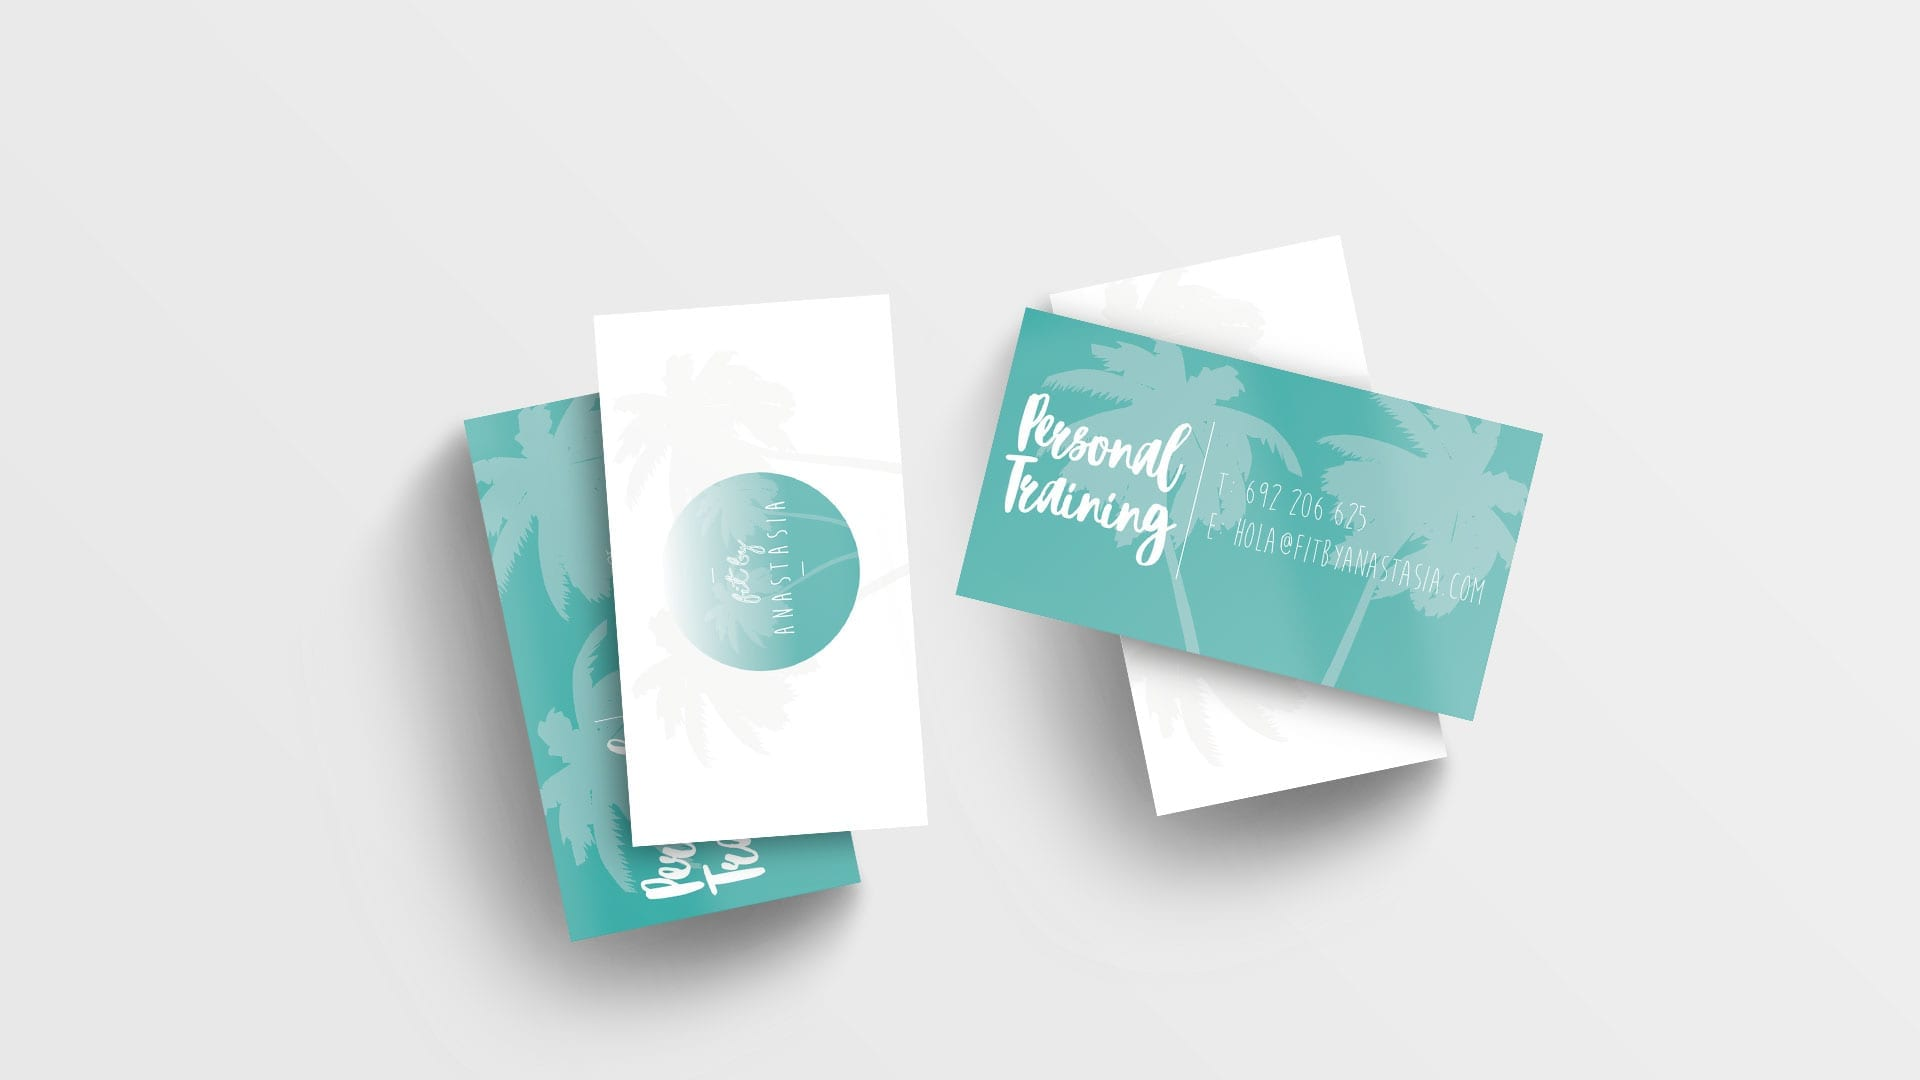 logo design on business cards mockup